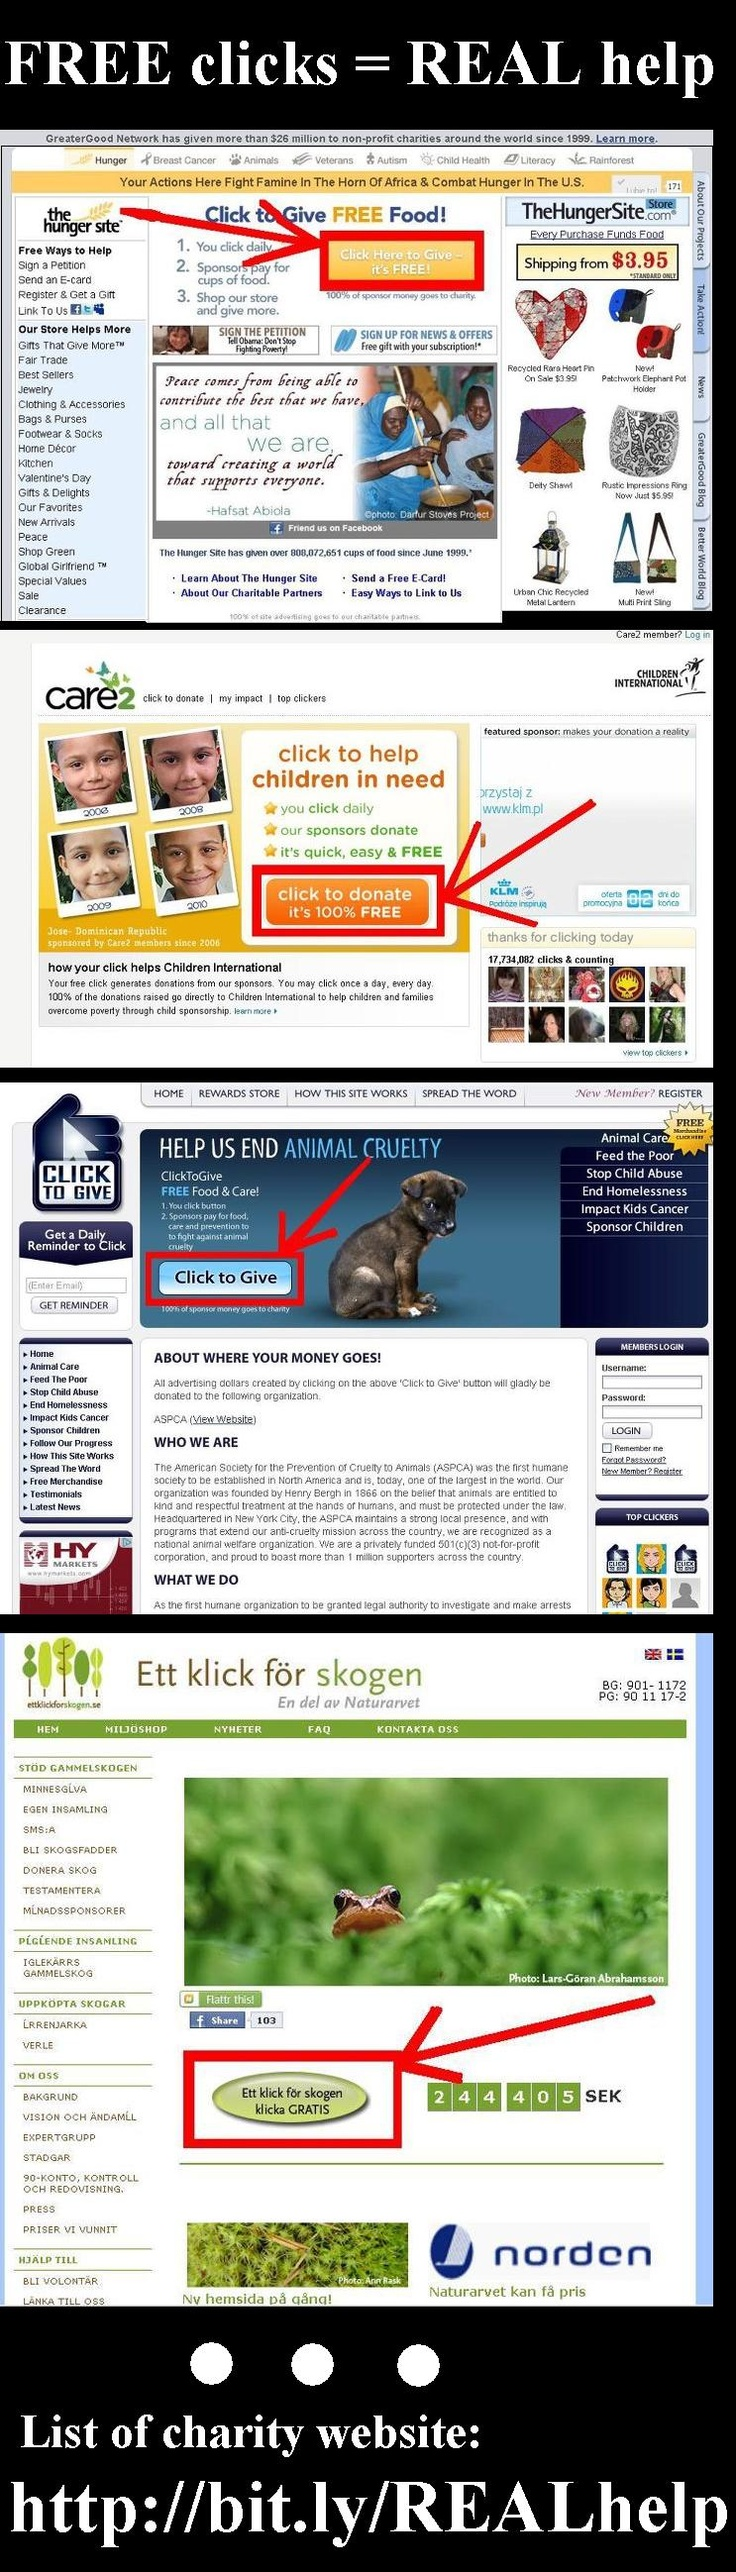 Your click can helped!     Please SHARE this list/pin    https://www.facebook.com/notes/free-clickreal-help/list-of-charity-website-sort-by-language/141115852672736    #help #free